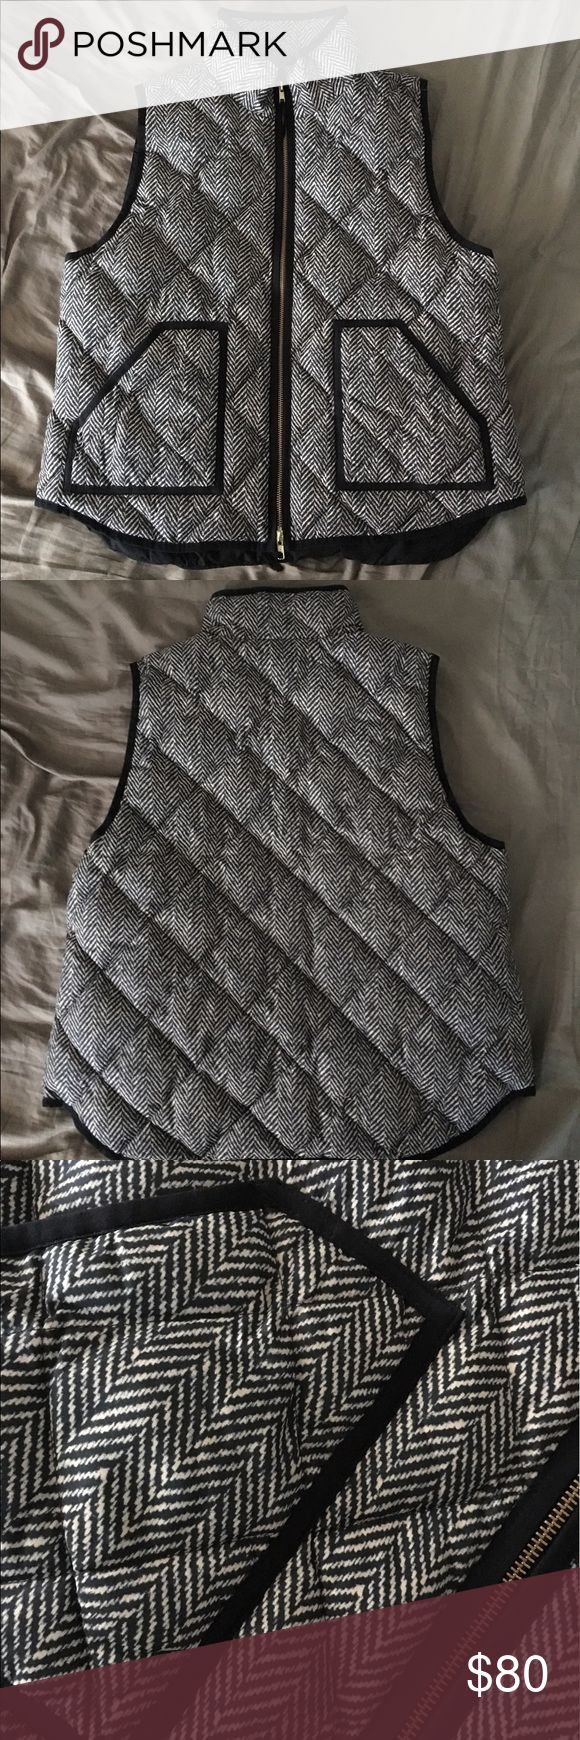 J Crew Printed Vest Black and off white printed puffer vest by J CREW in XL. Perfect vest for fall and winter time. Brand new with tags. J. Crew Jackets & Coats Vests